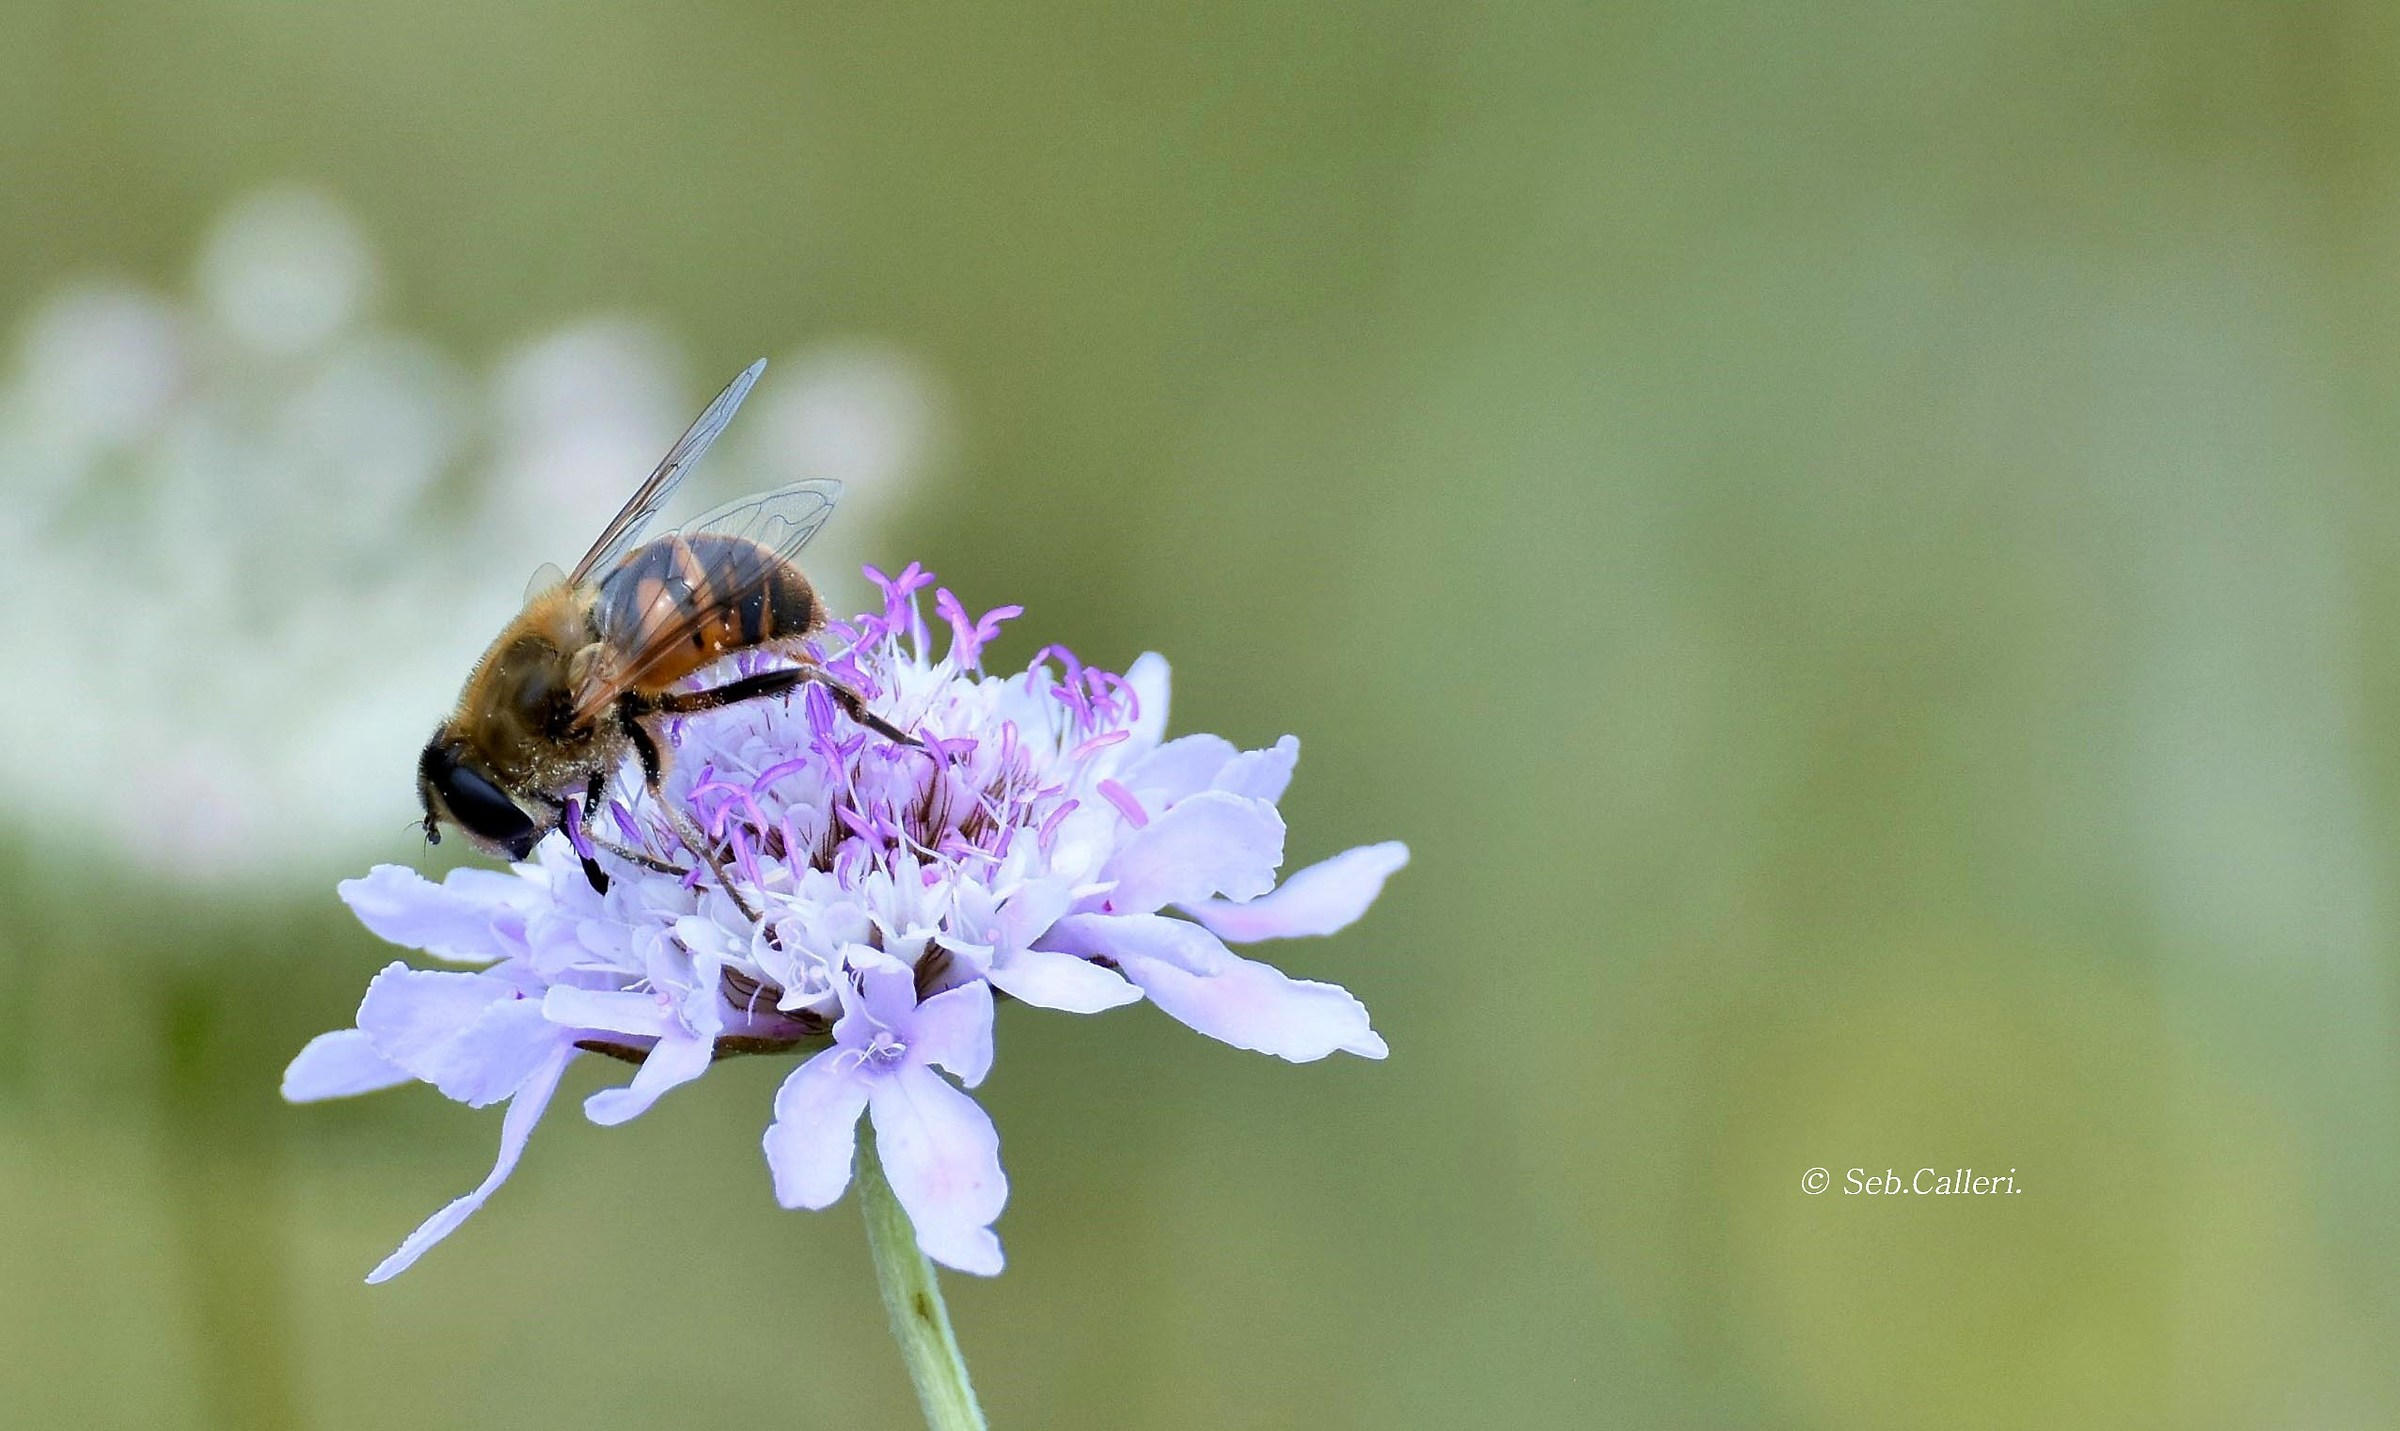 The Bee and the flower......